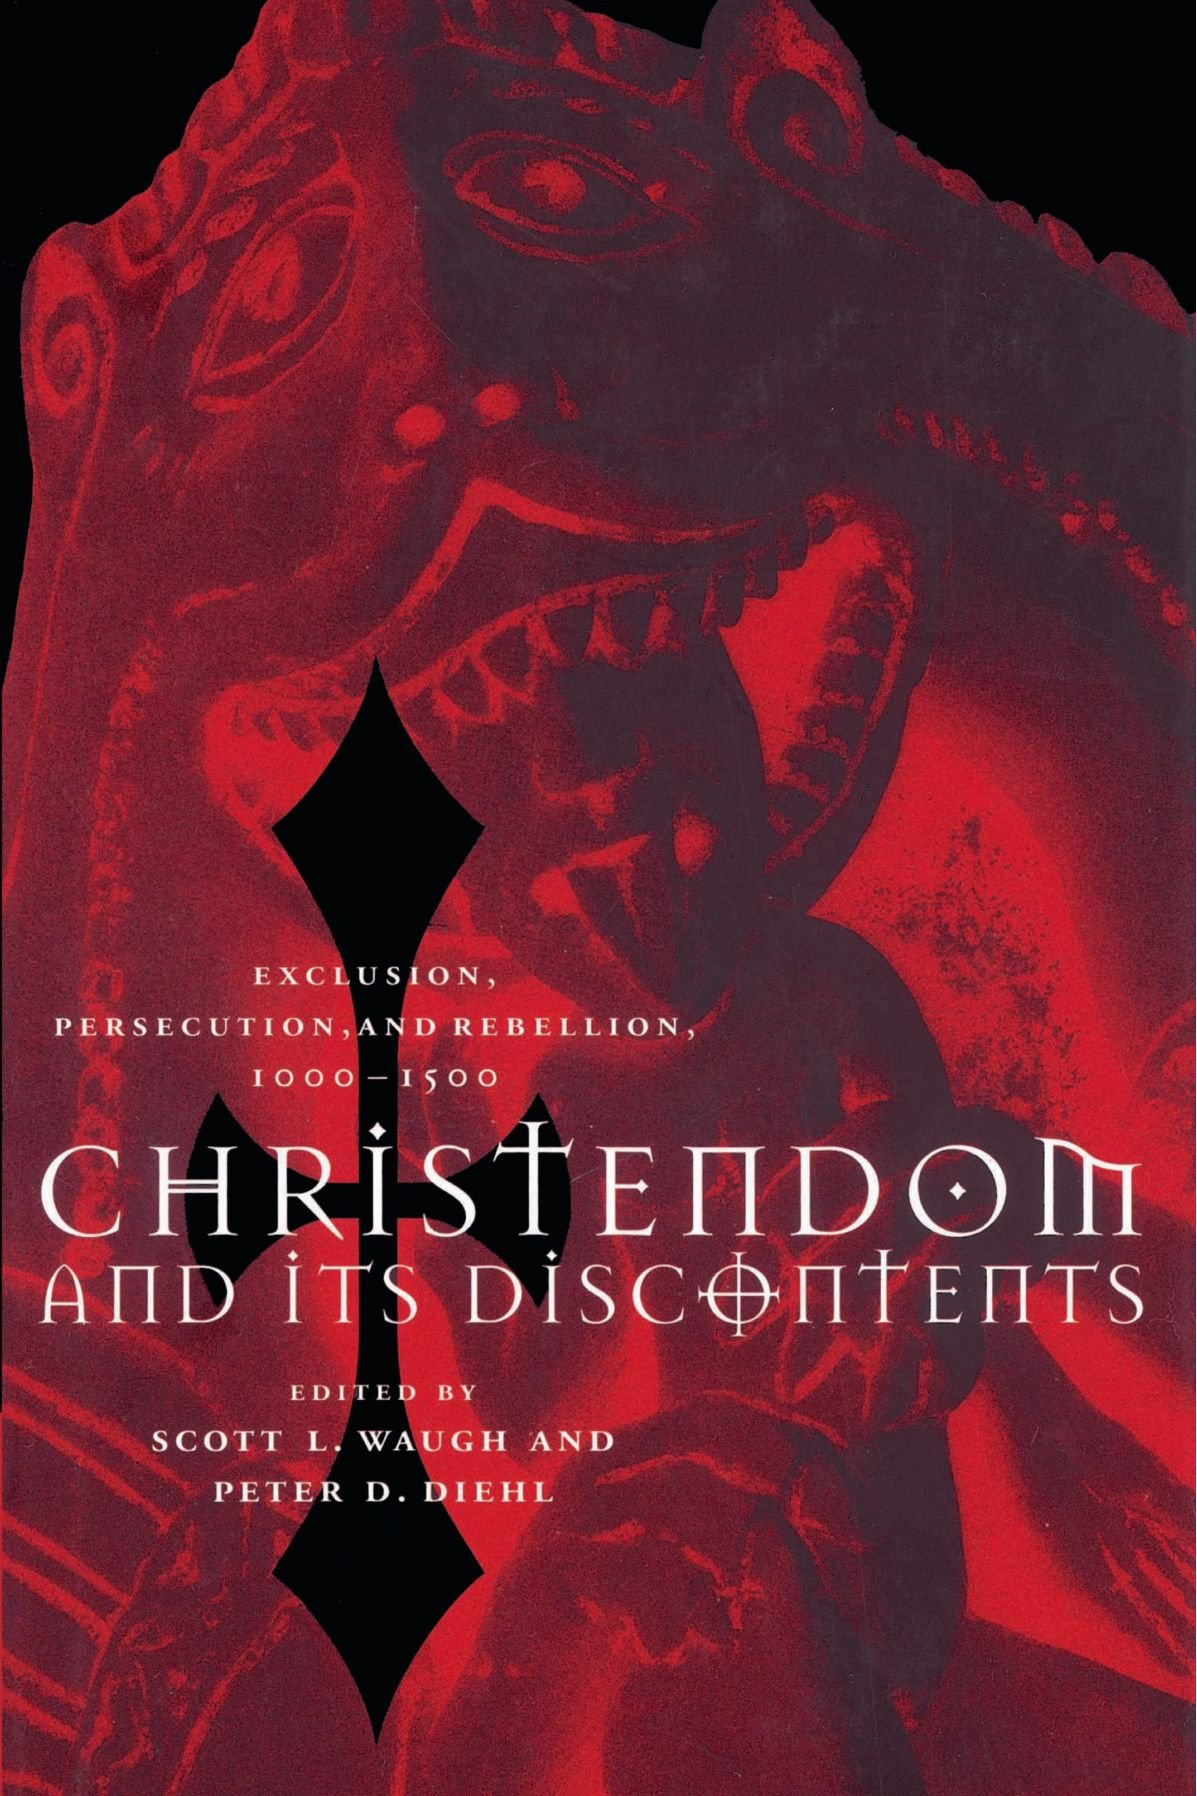 Christendom and its Discontents: Exclusion, Persecution, and